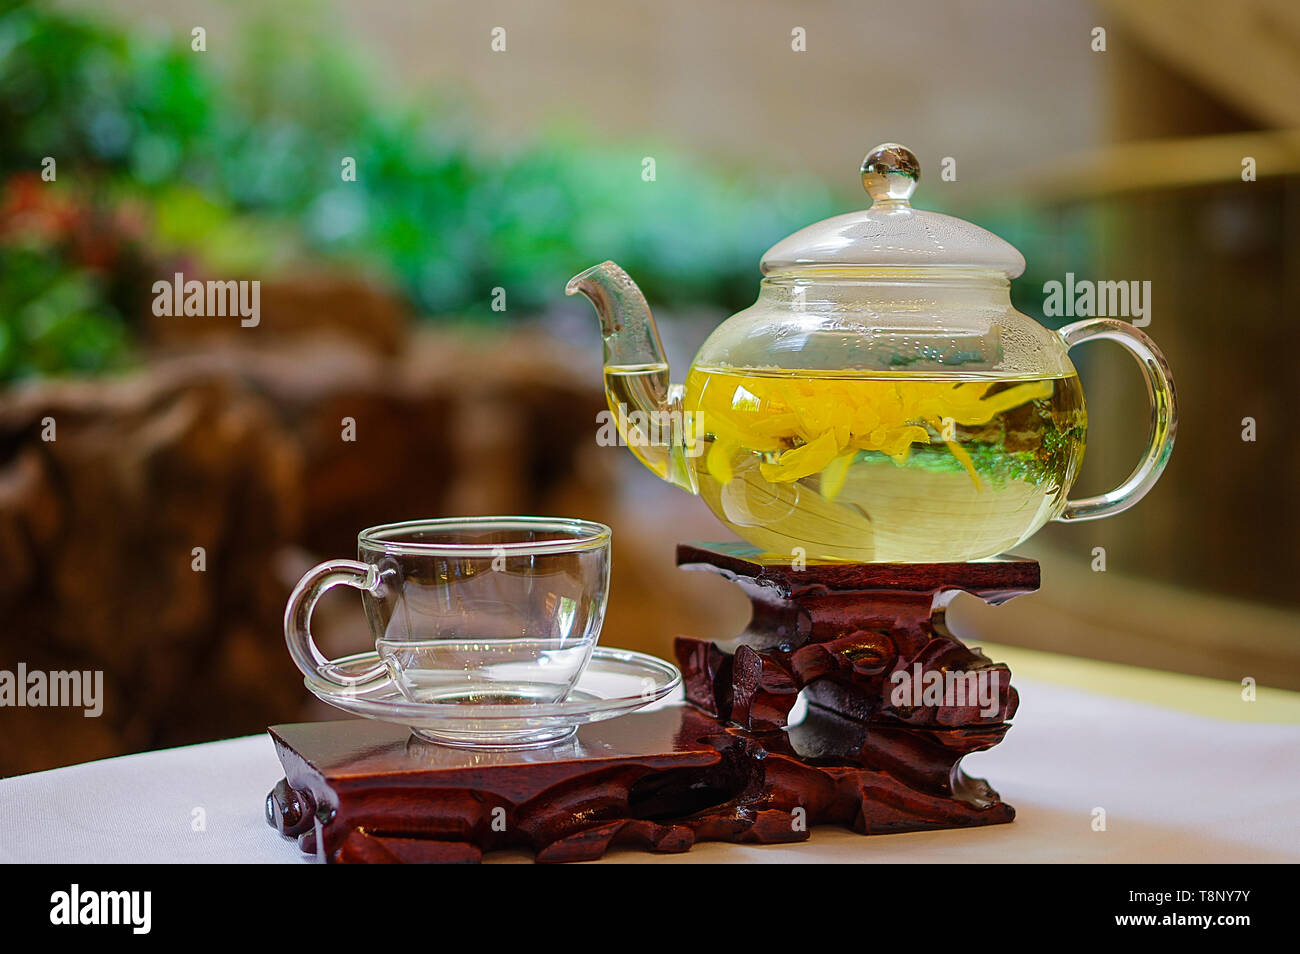 Traditional Chinese chrysanthemum tea in glass teapot on wooden plate - Stock Image